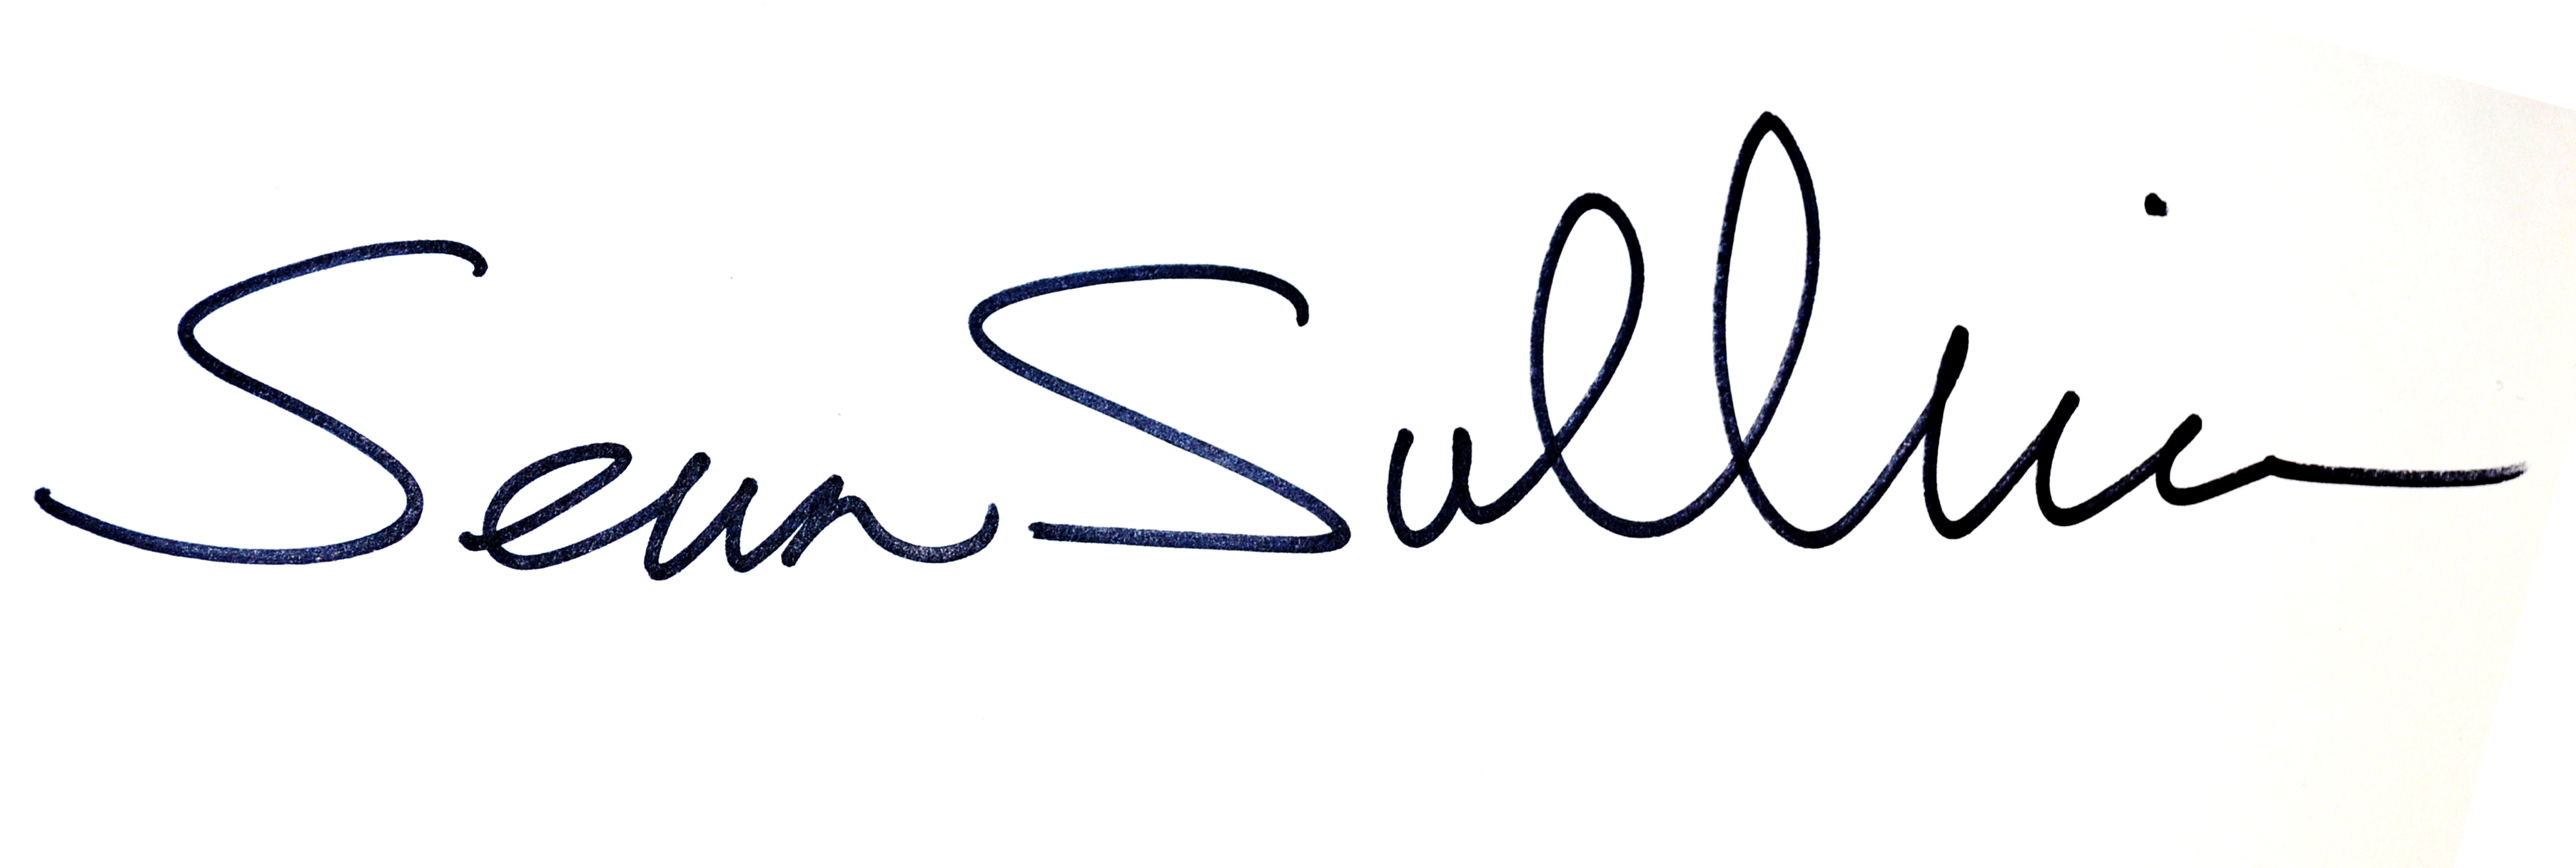 Sean Sullivan Signature